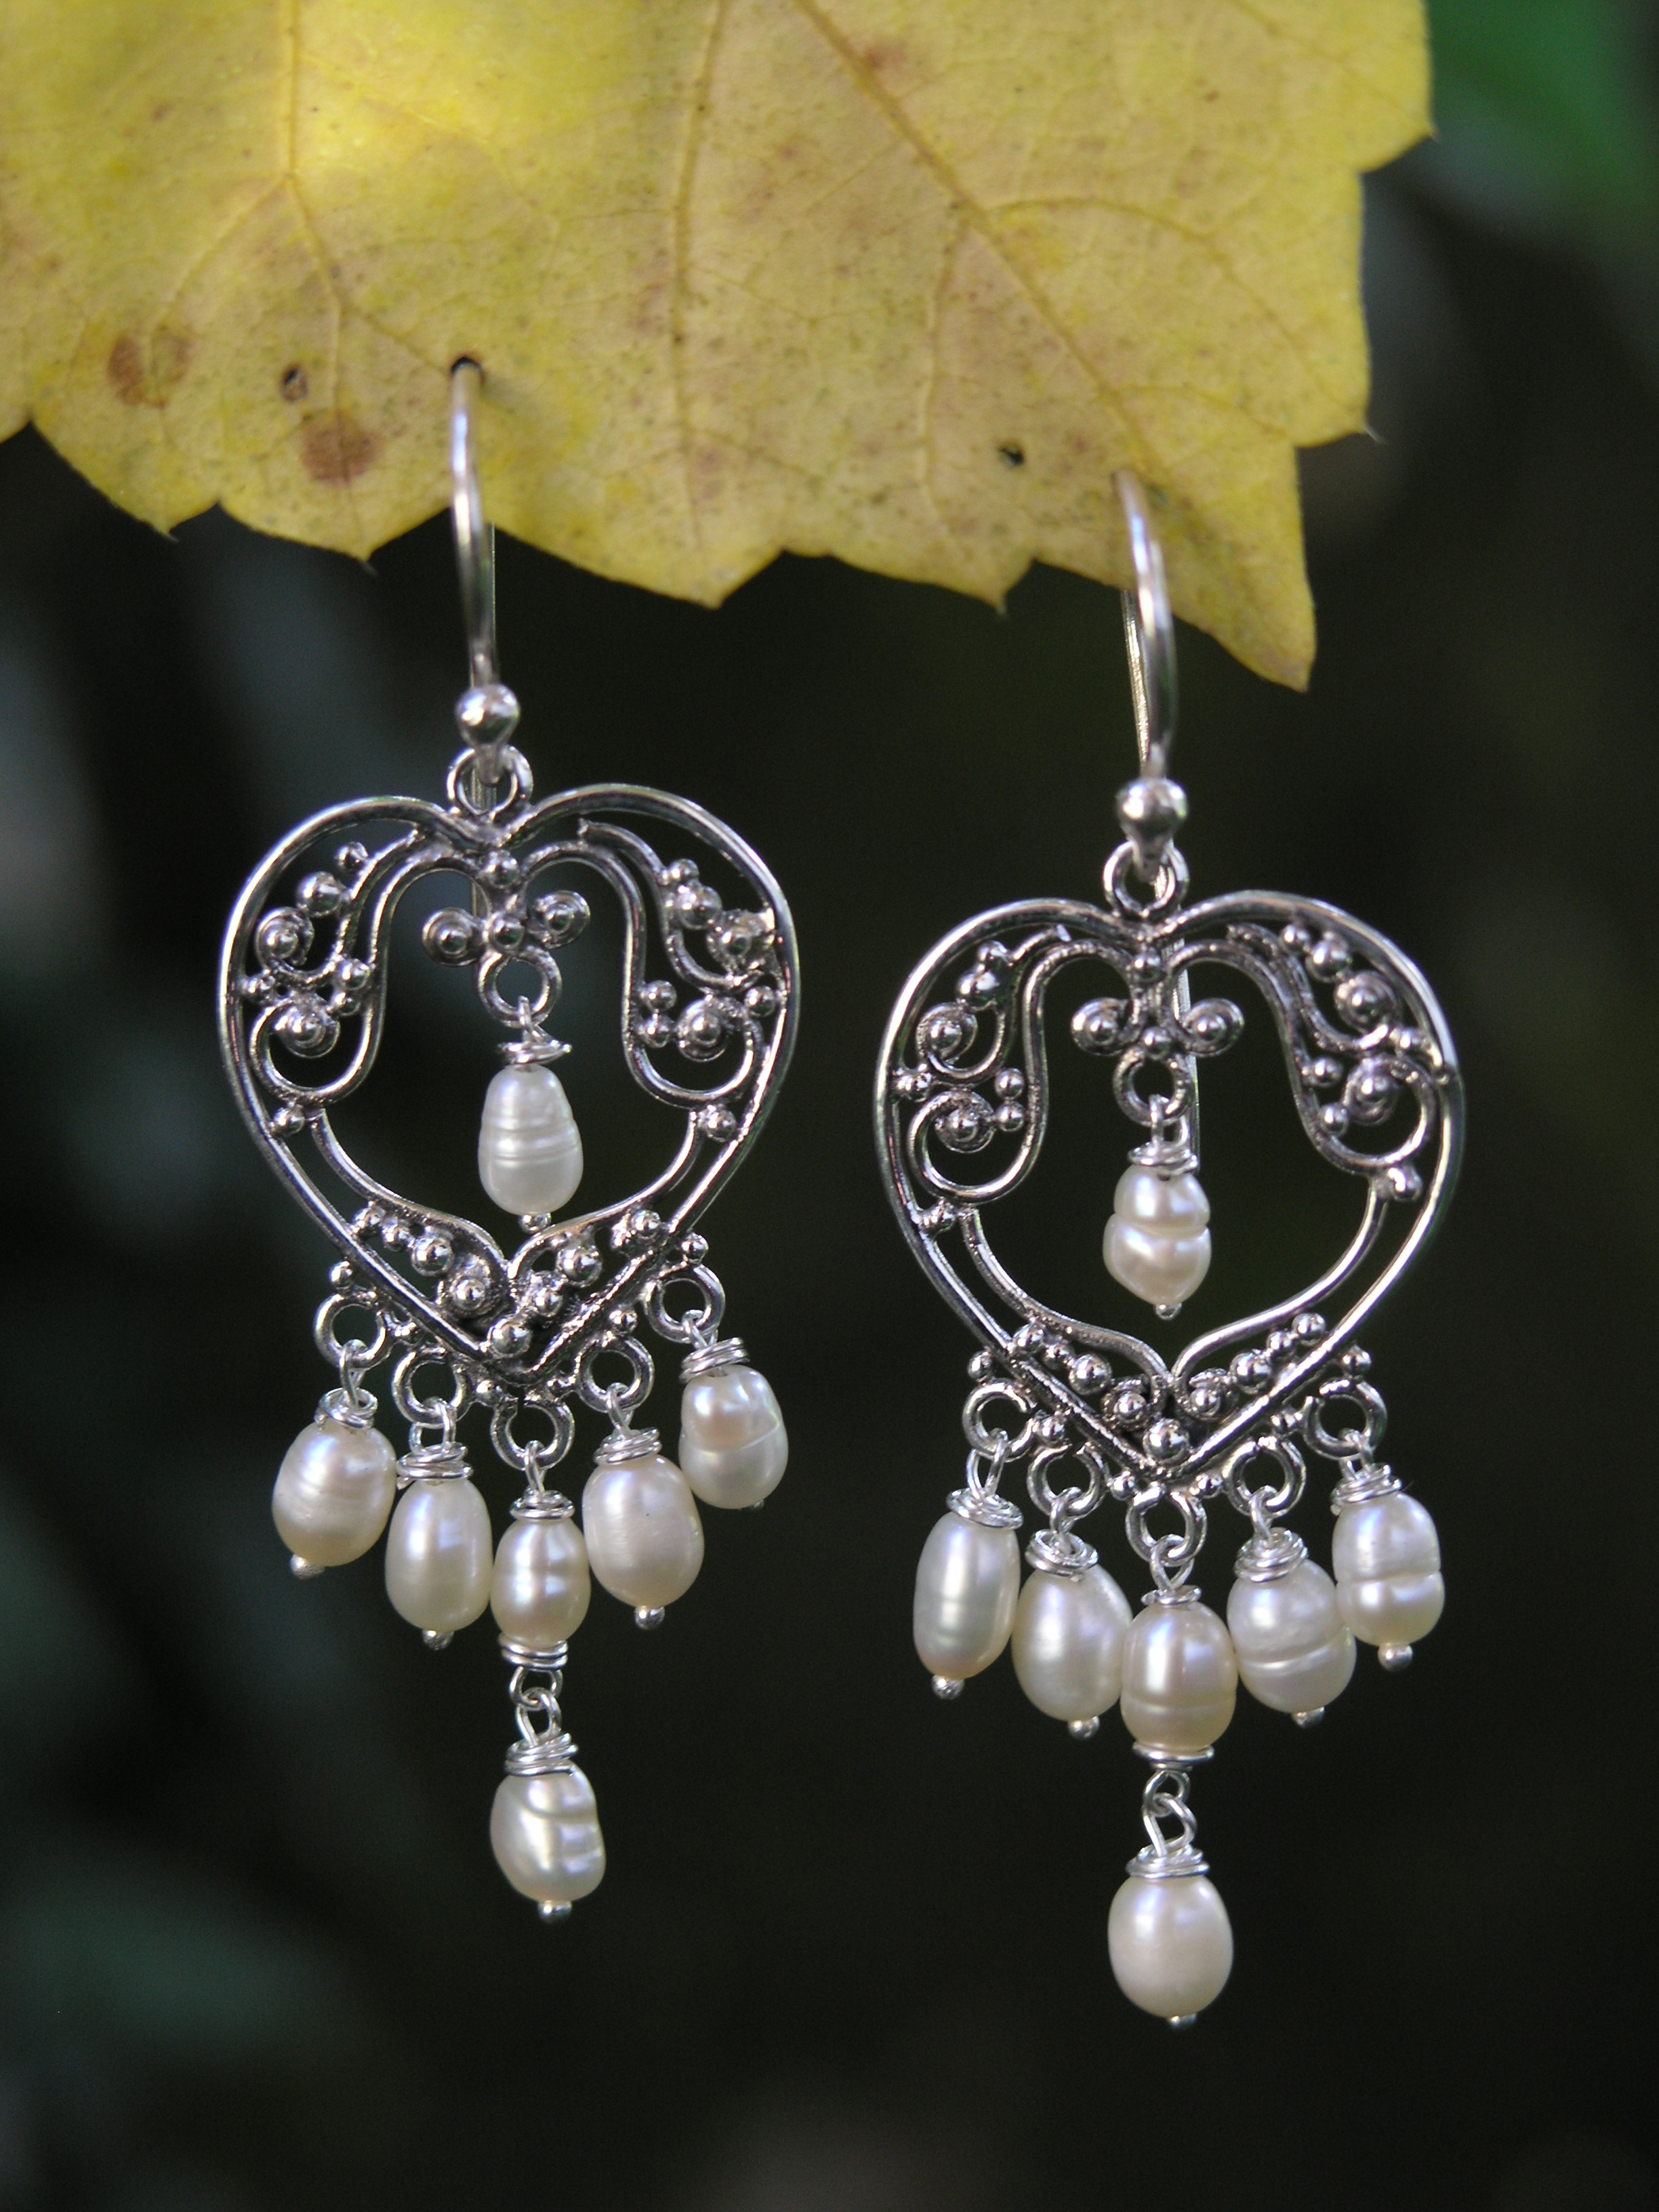 How to Choose Bridal Earrings to Complement Your Style